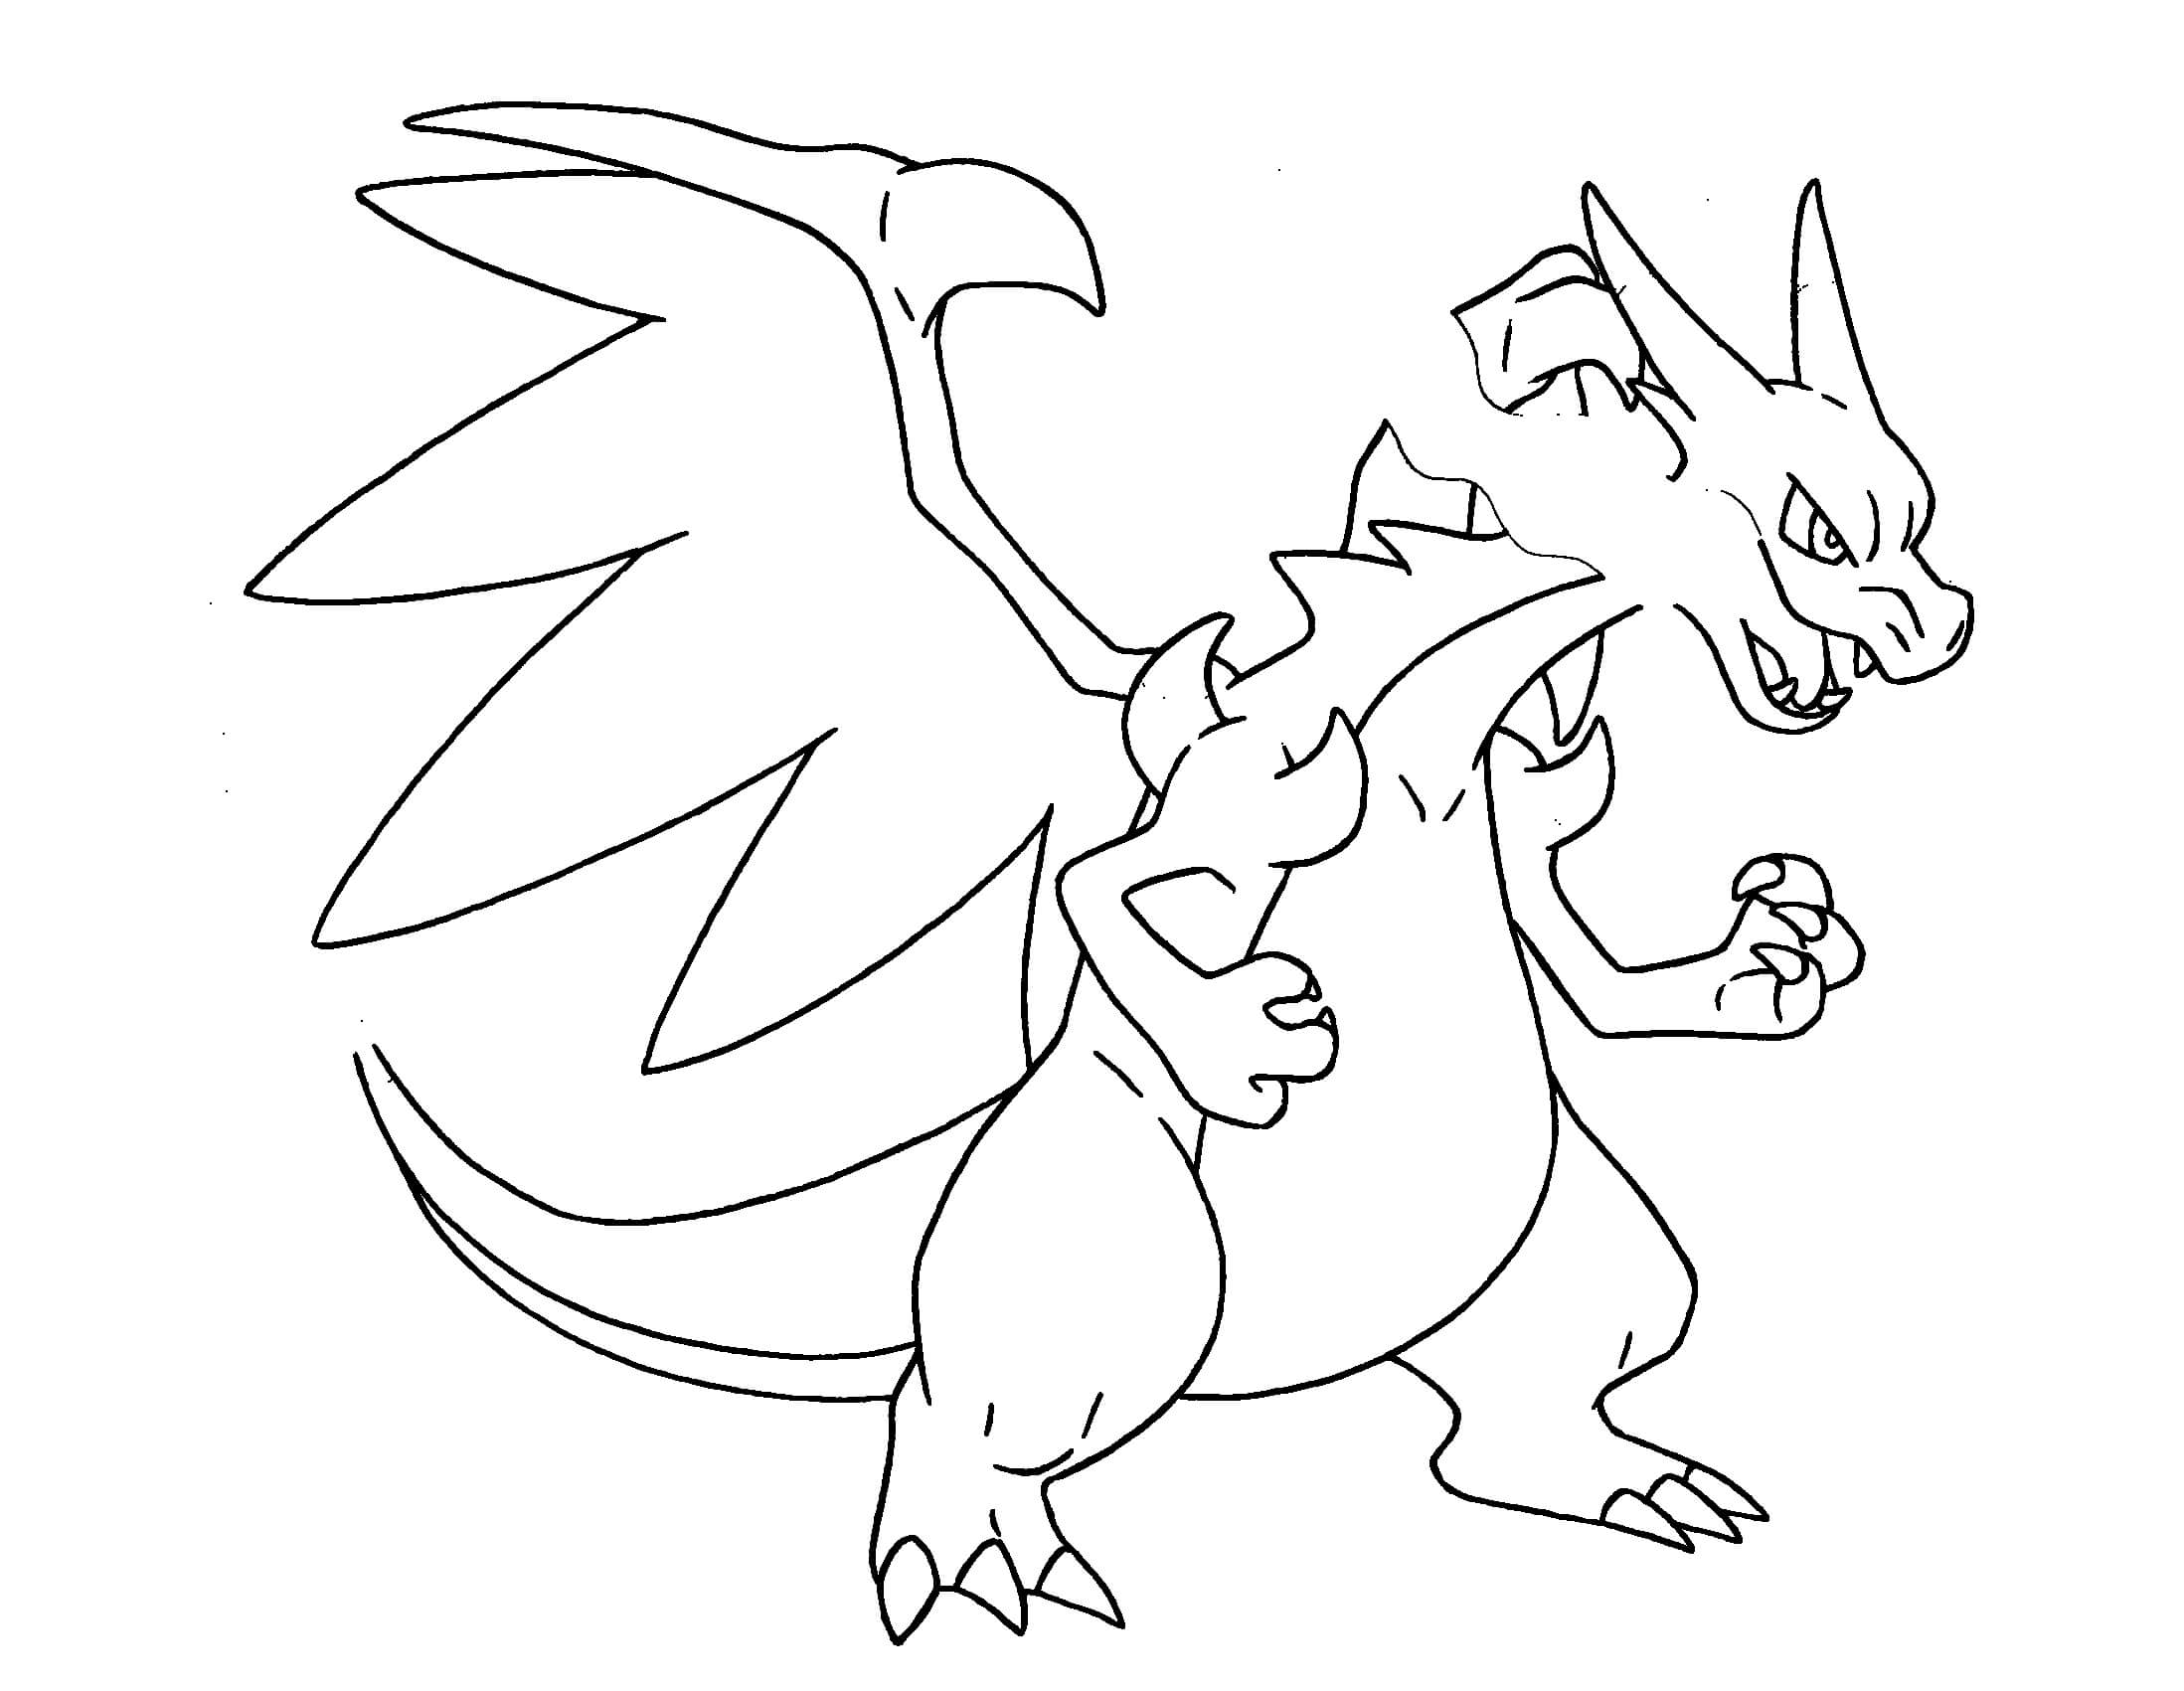 coloring pokemon charizard charizard coloring pages to download and print for free coloring charizard pokemon